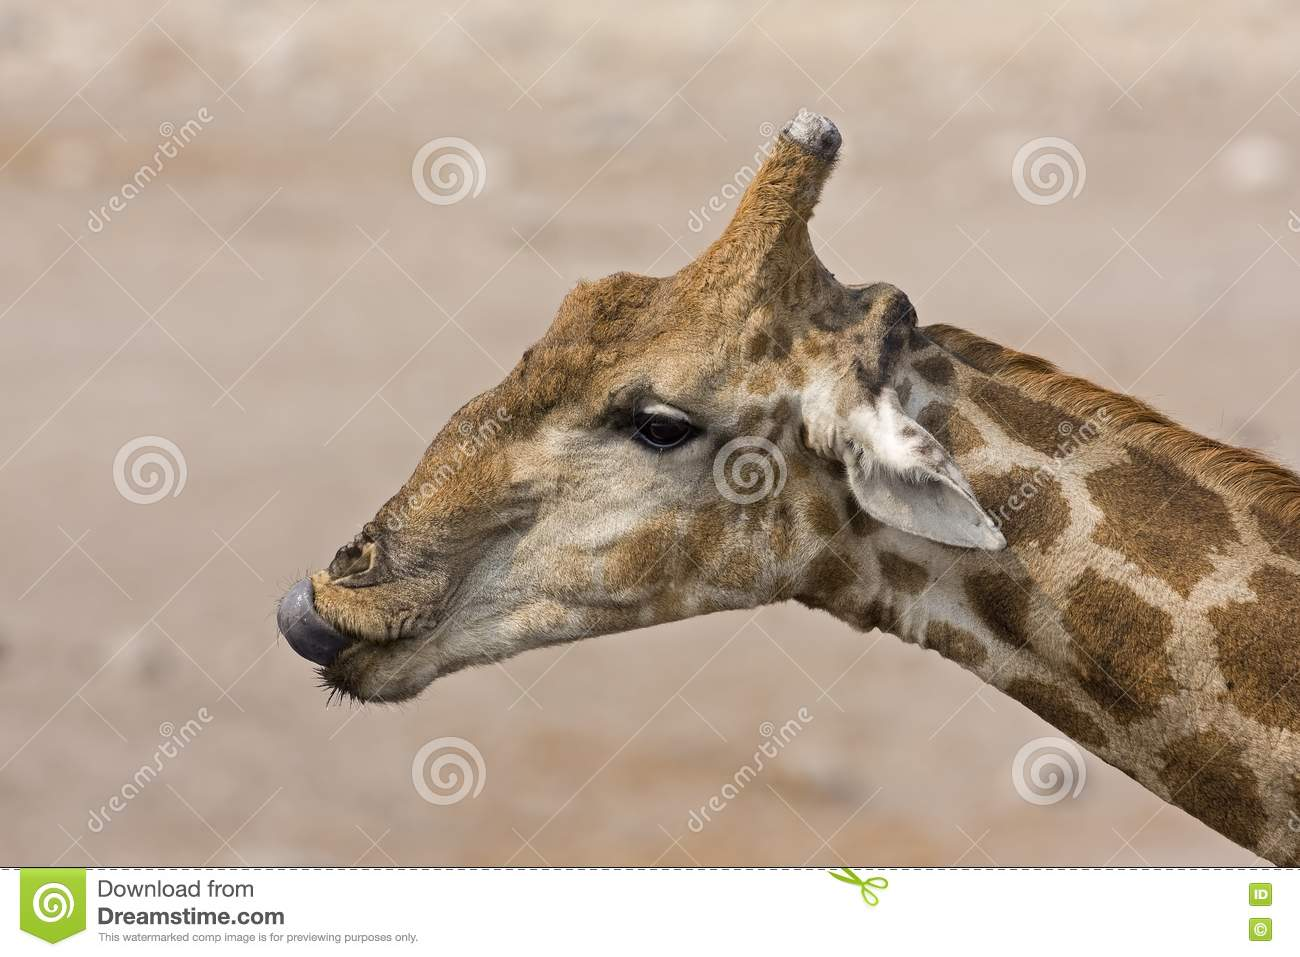 Giraffe head close up - photo#22